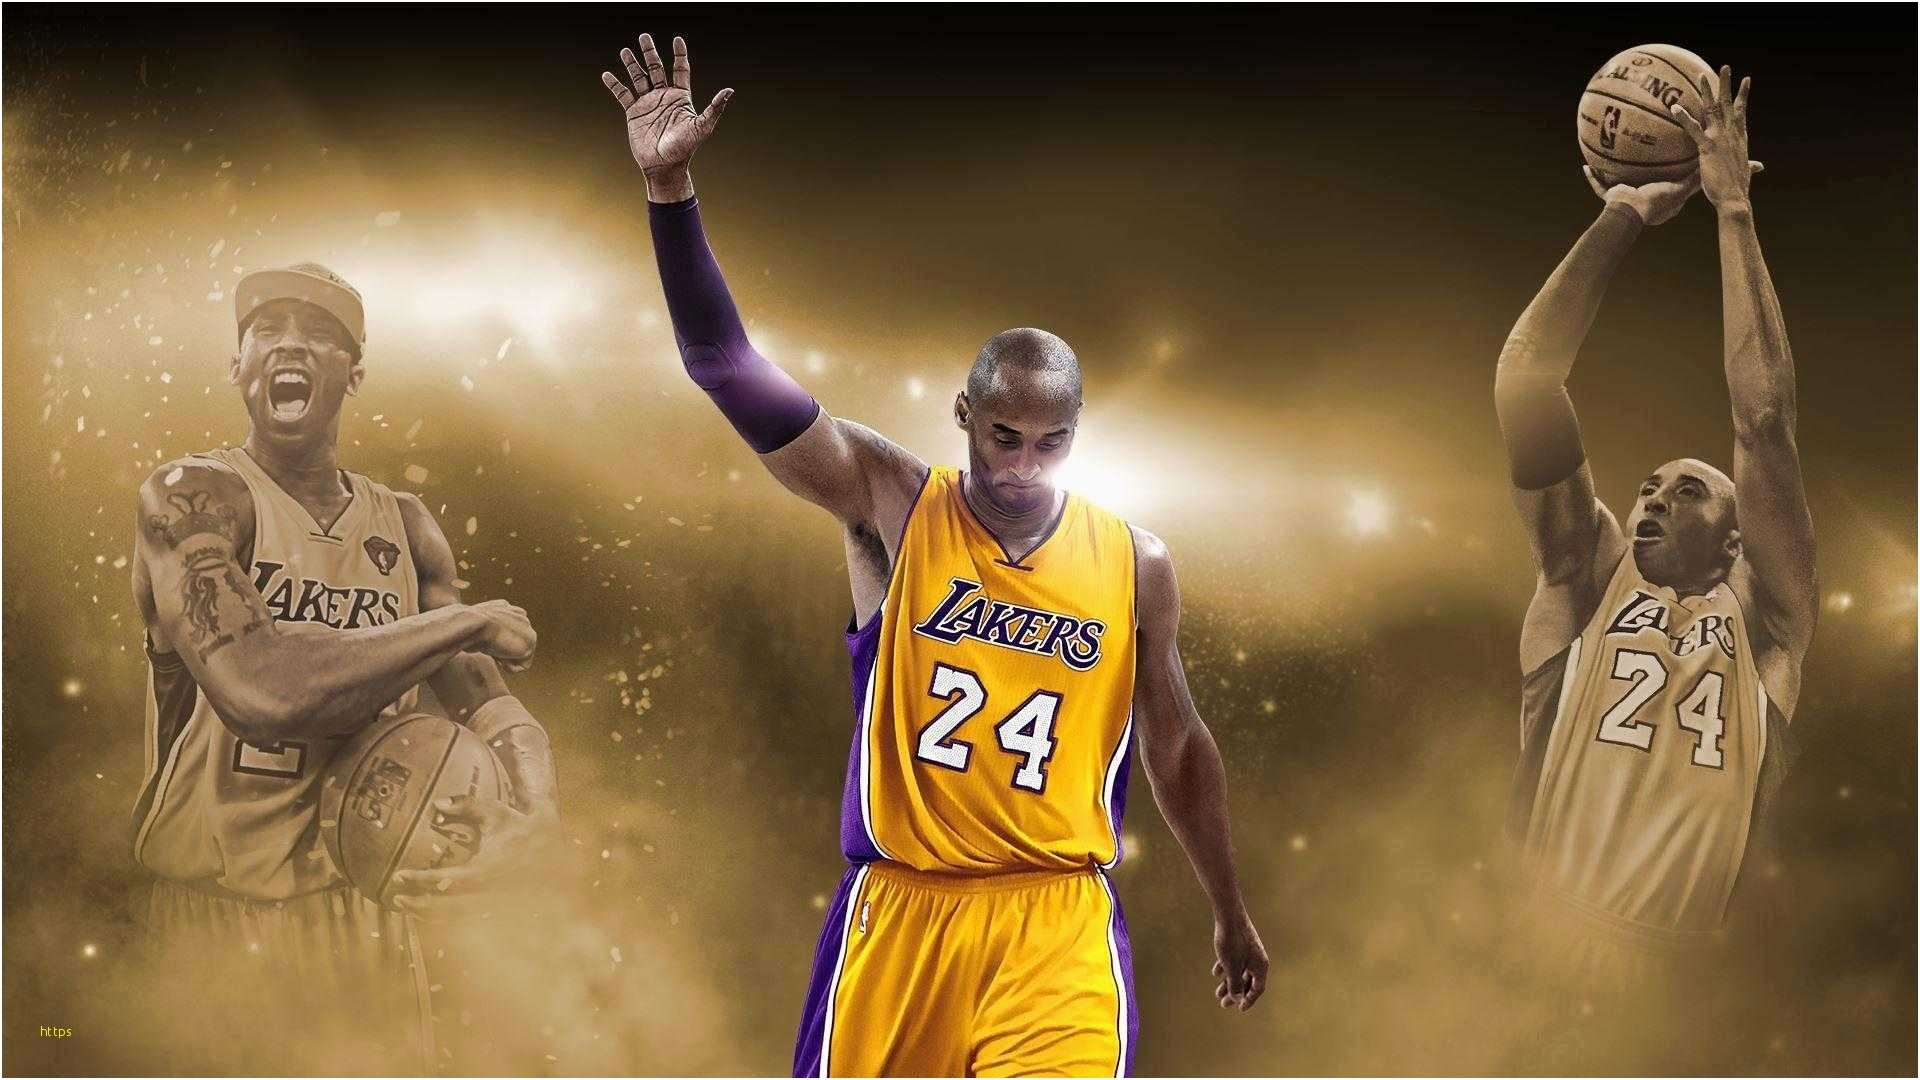 Kobe Bryant Wallpapers Unique Kobe Bryant Hd Wallpaper Download Free Hd Wallpapers